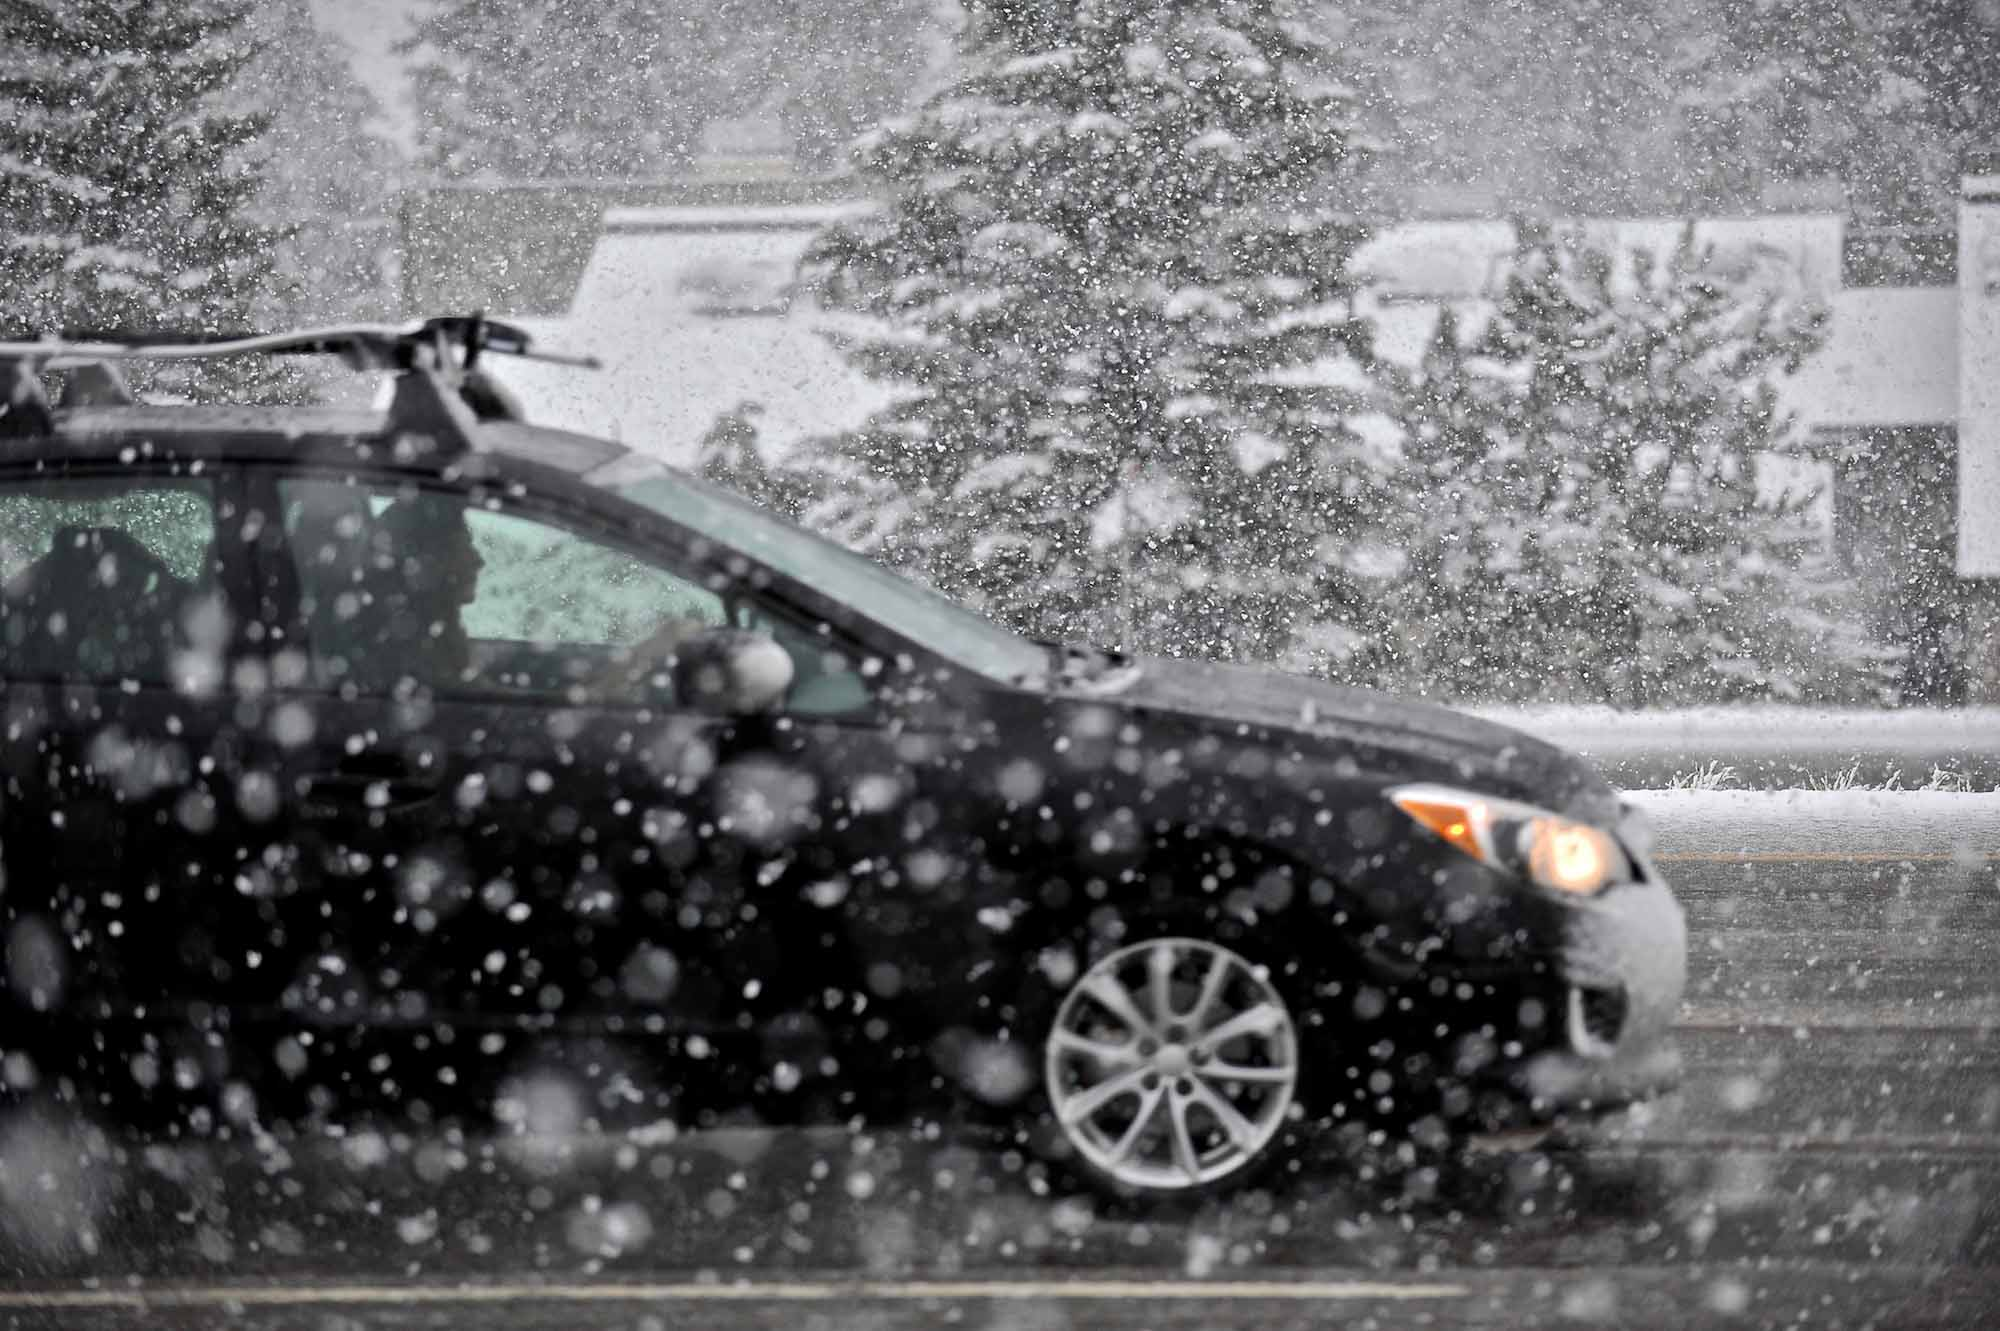 A driver travels west on I-70 during a snowstorm in Vail, Colo. on Sunday, May 11, 2014. The Mother's Day storm caused numerous accidents along the Interstate from Silverthorne to Gypsum.